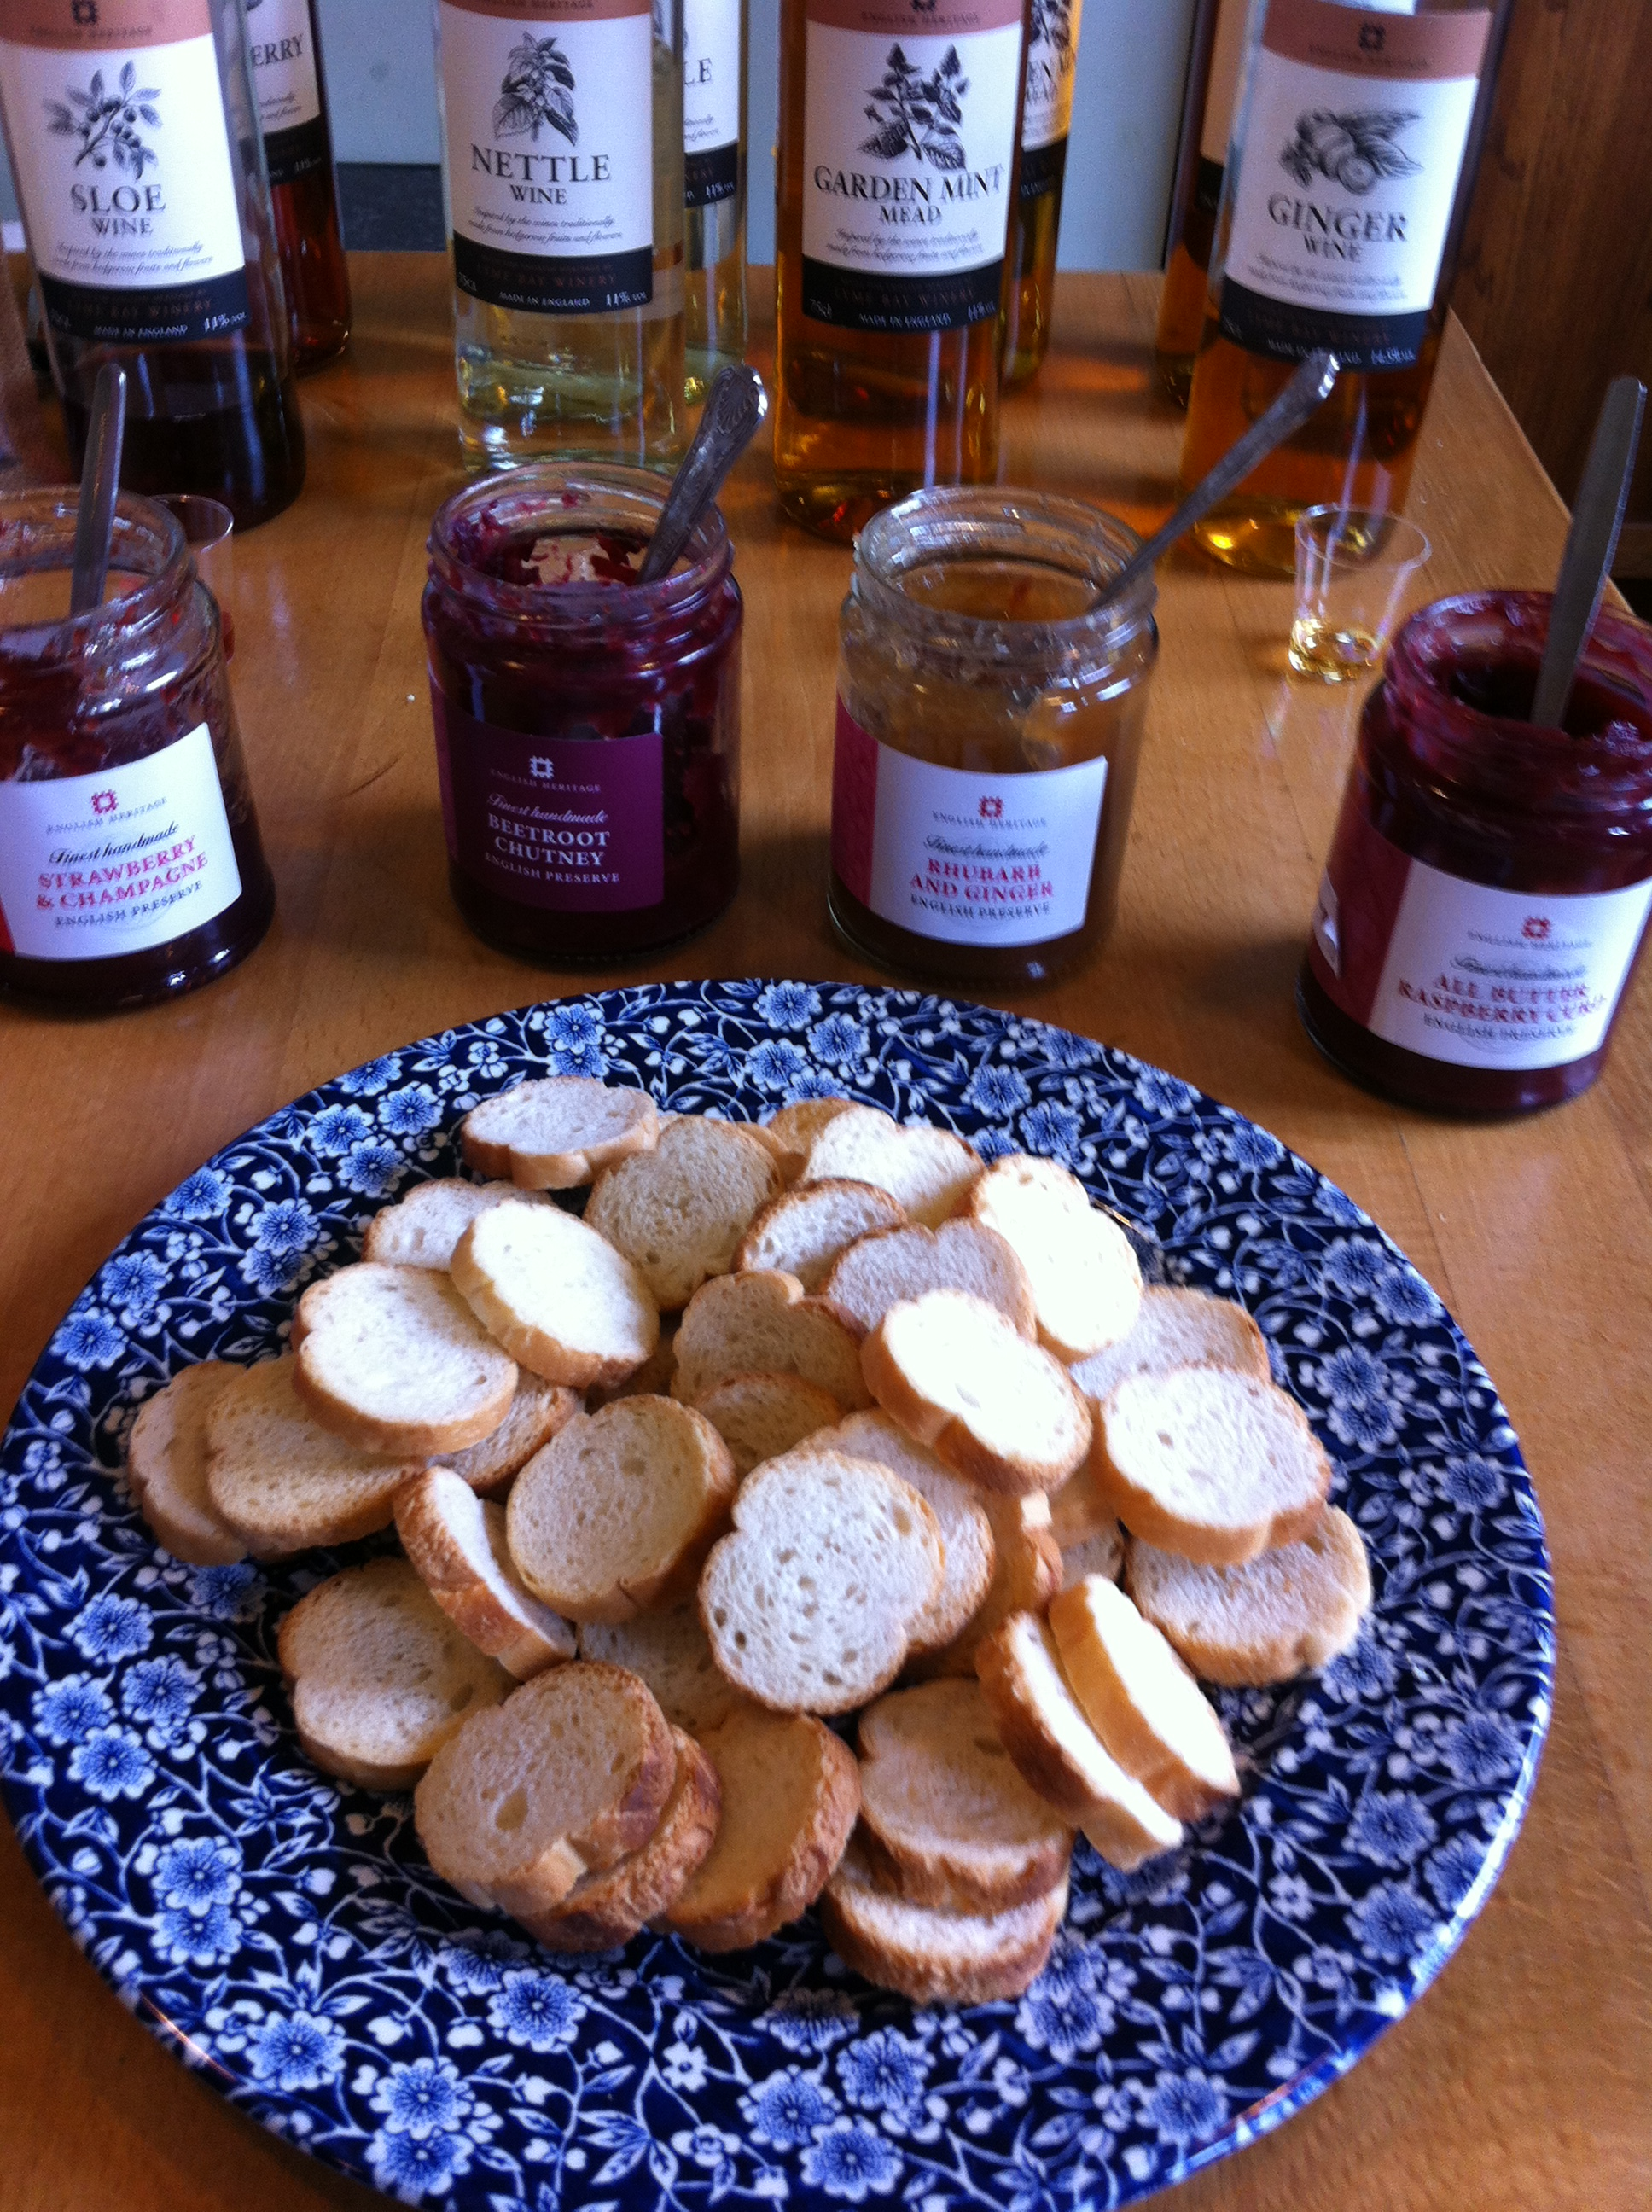 Jam and bread at the home of Charles Darwin